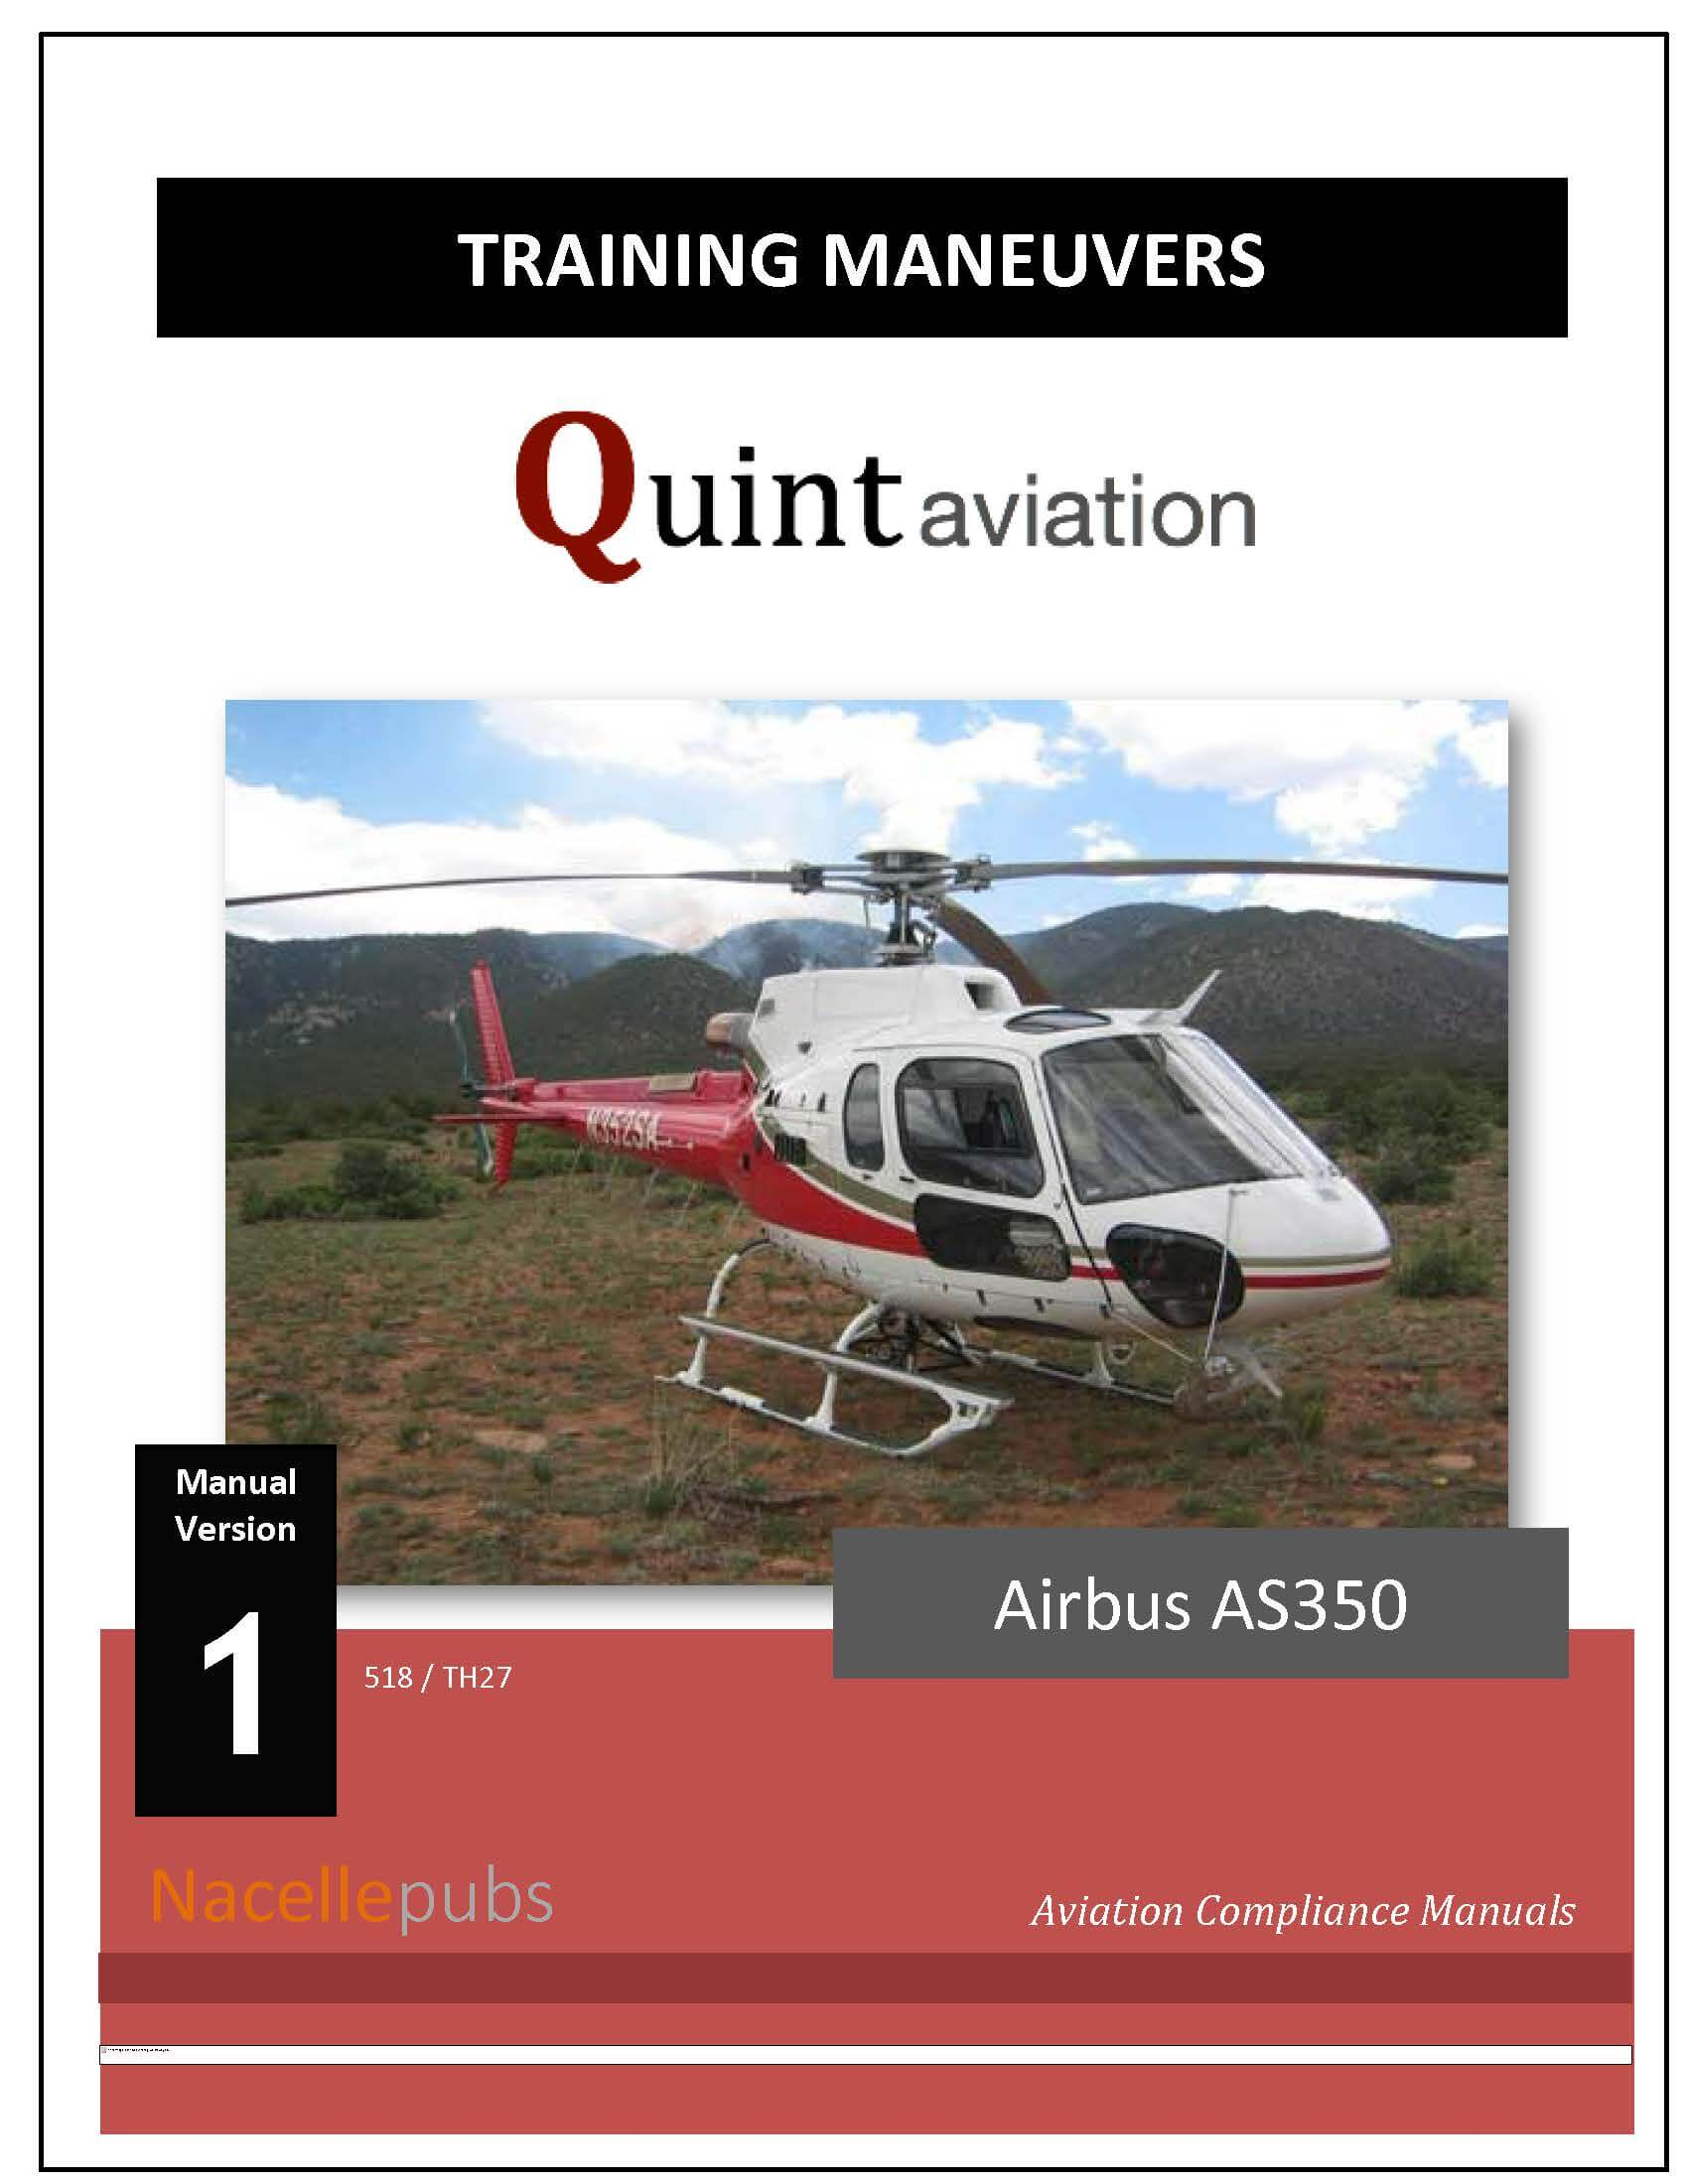 FAA Part 135 Training Program - Helicopter Maneuvers